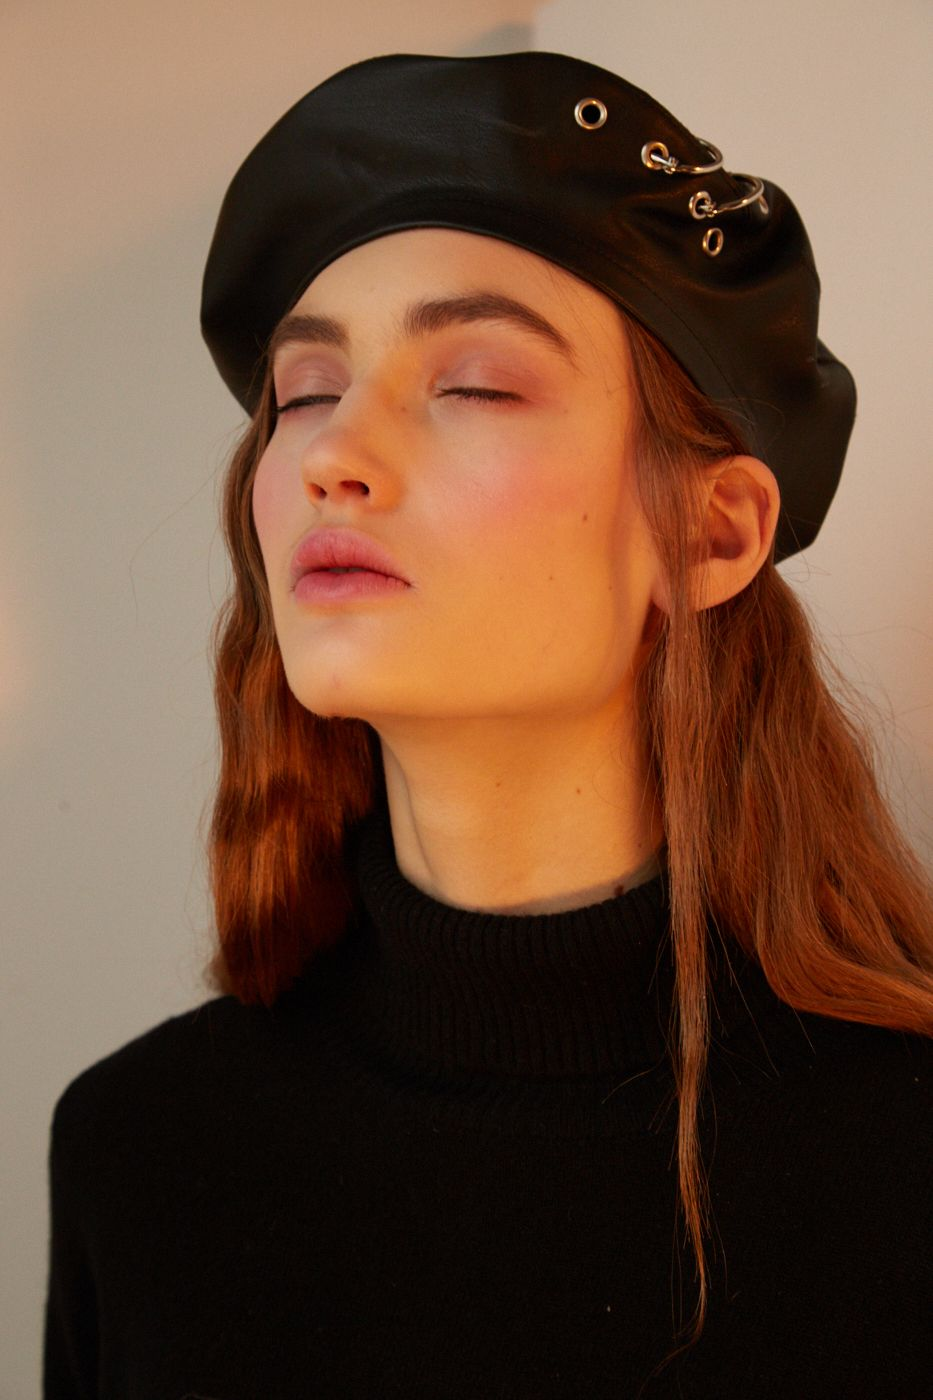 be3fd8535298f Black eco leather beret with eyelets and piercings